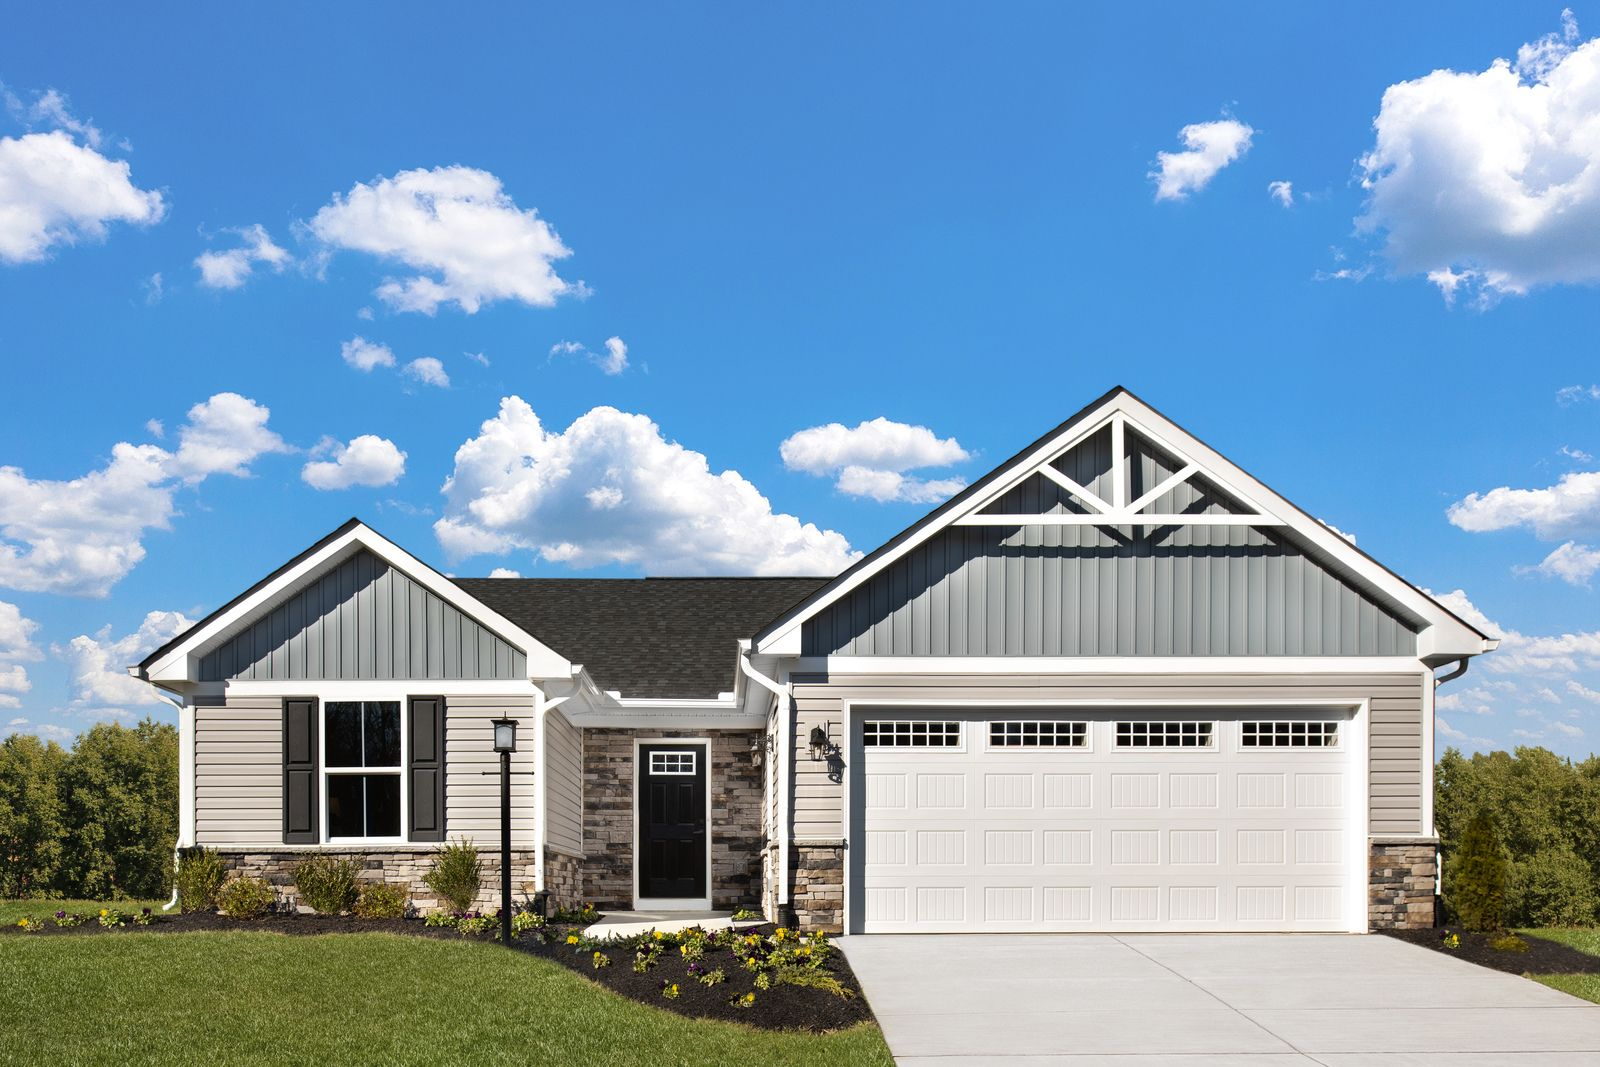 Just 1 Homesite Remaining in this Affordable, Low Maintenance Community:Own a new home with lawn maintenance included! Click here to schedule a visitbefore we sell out - there are limited homesites remaining!